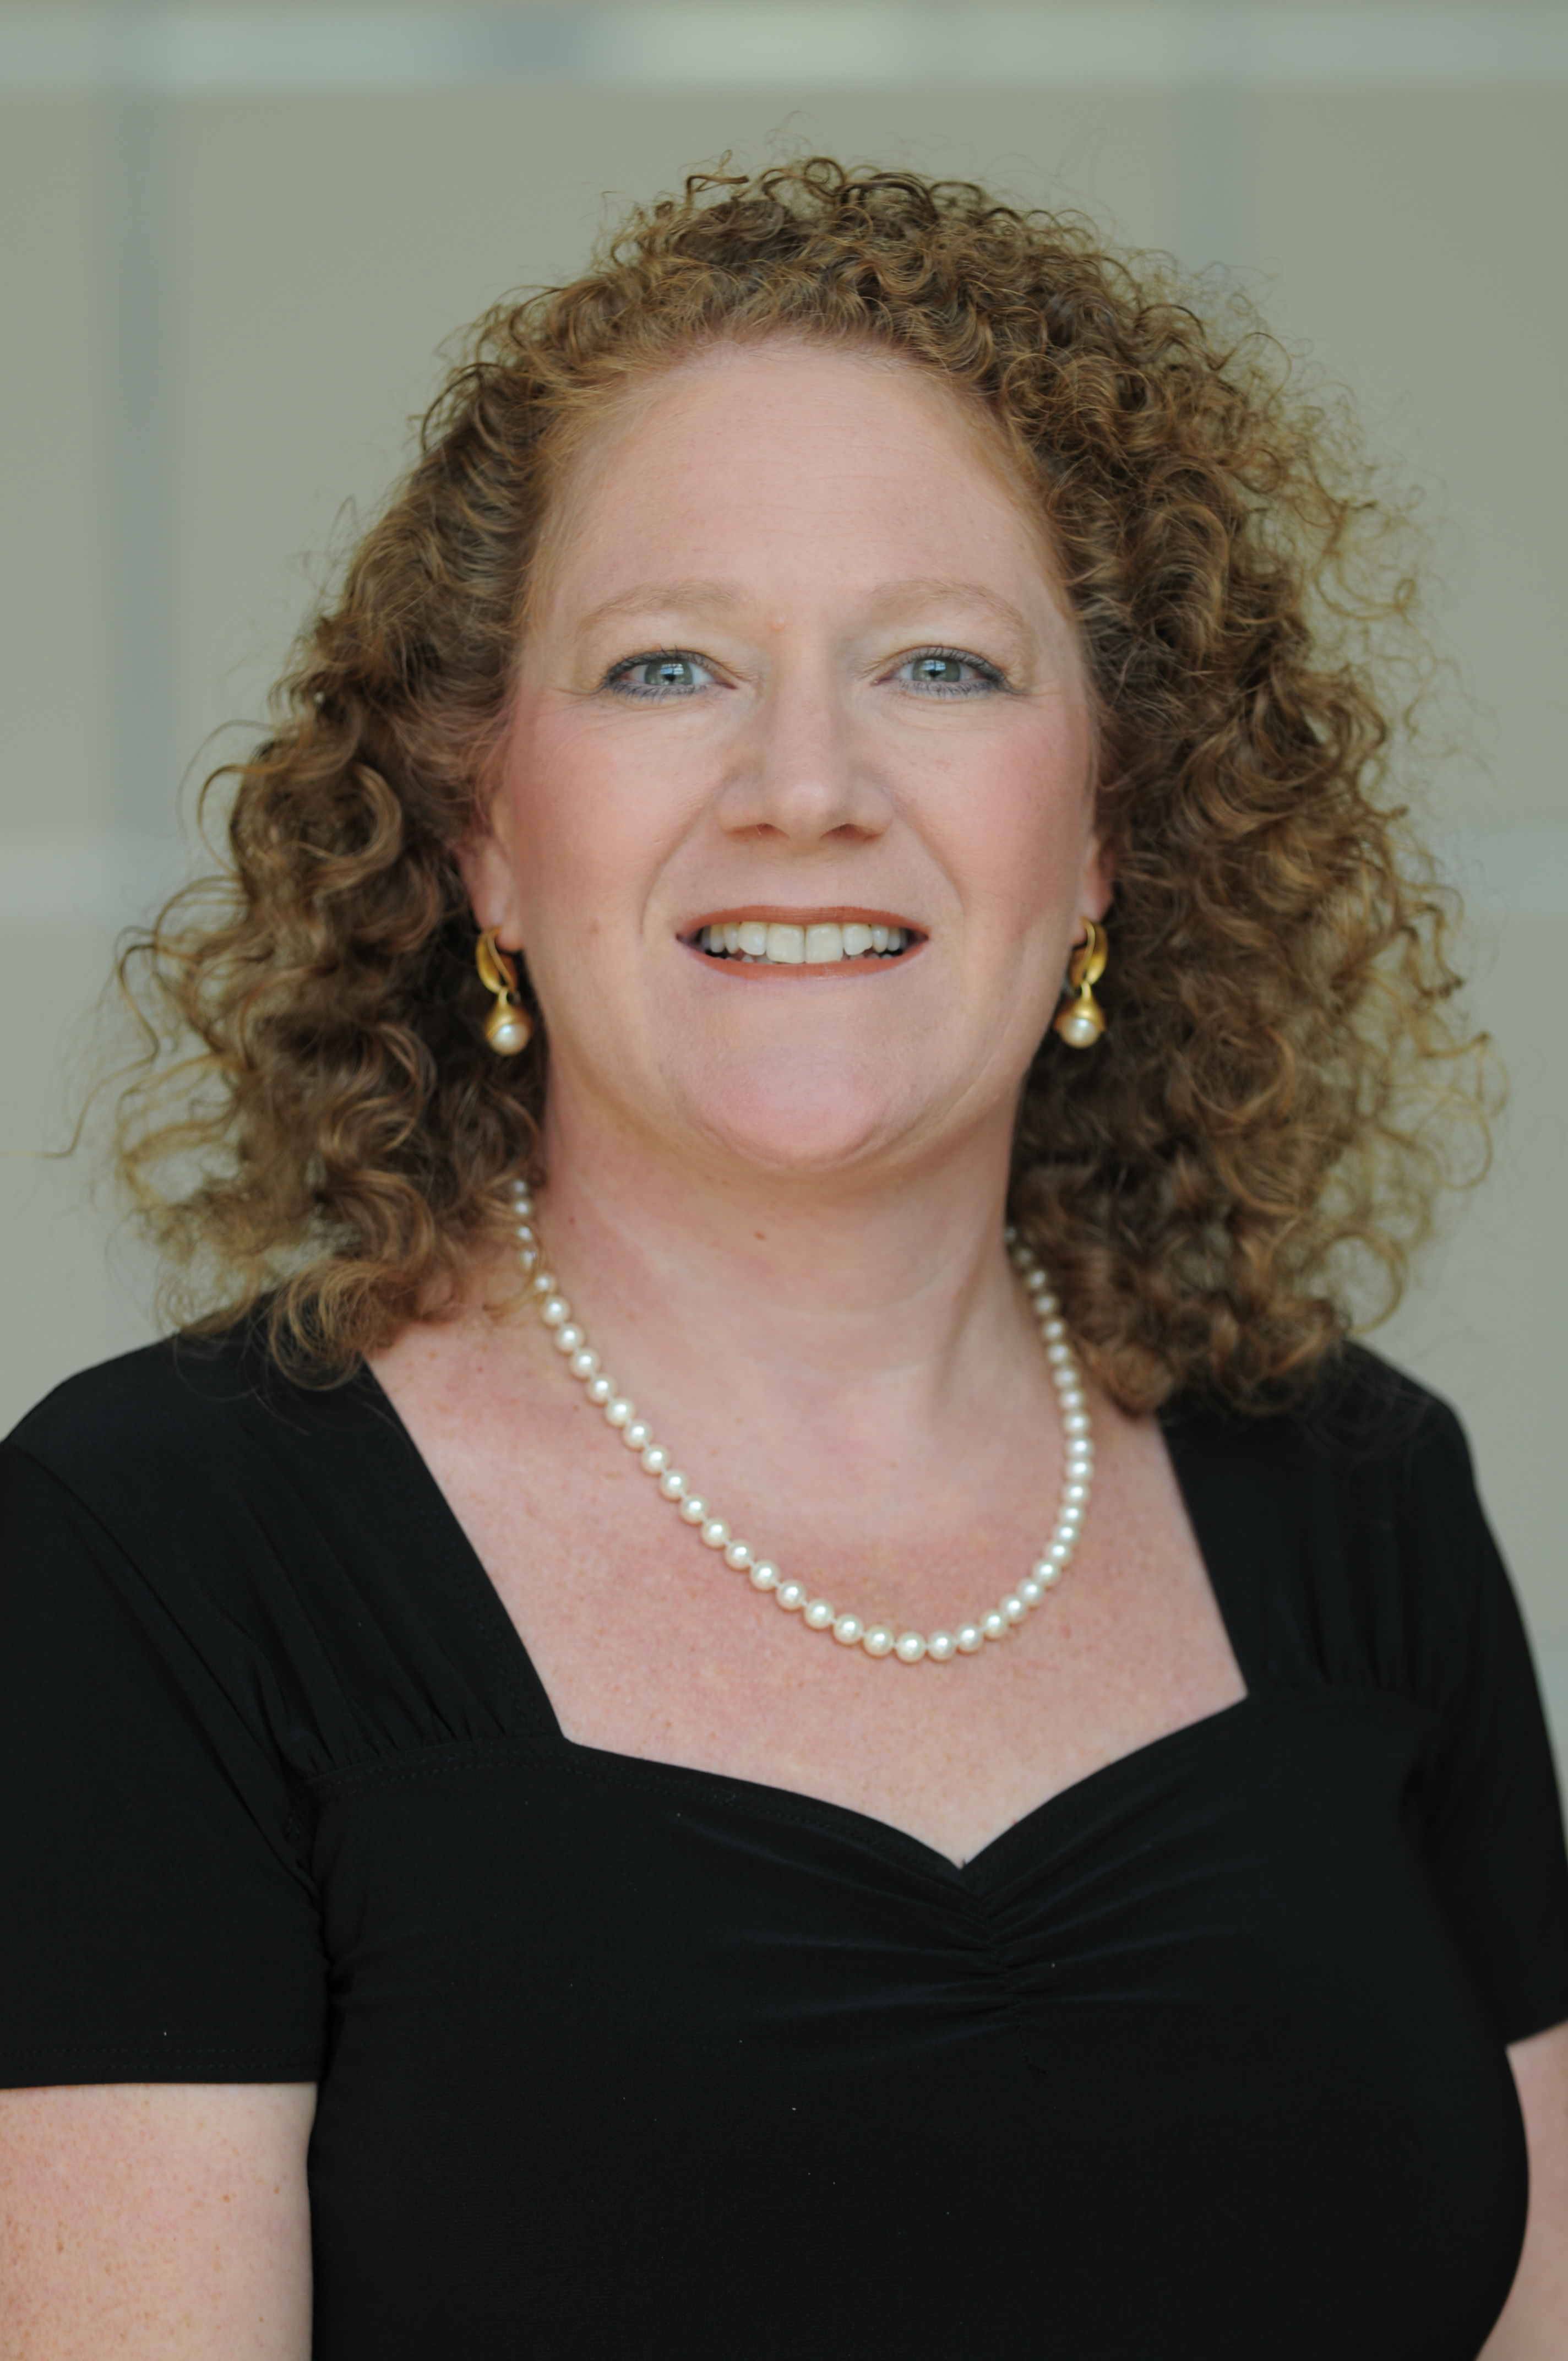 Erica Leventhal, MD